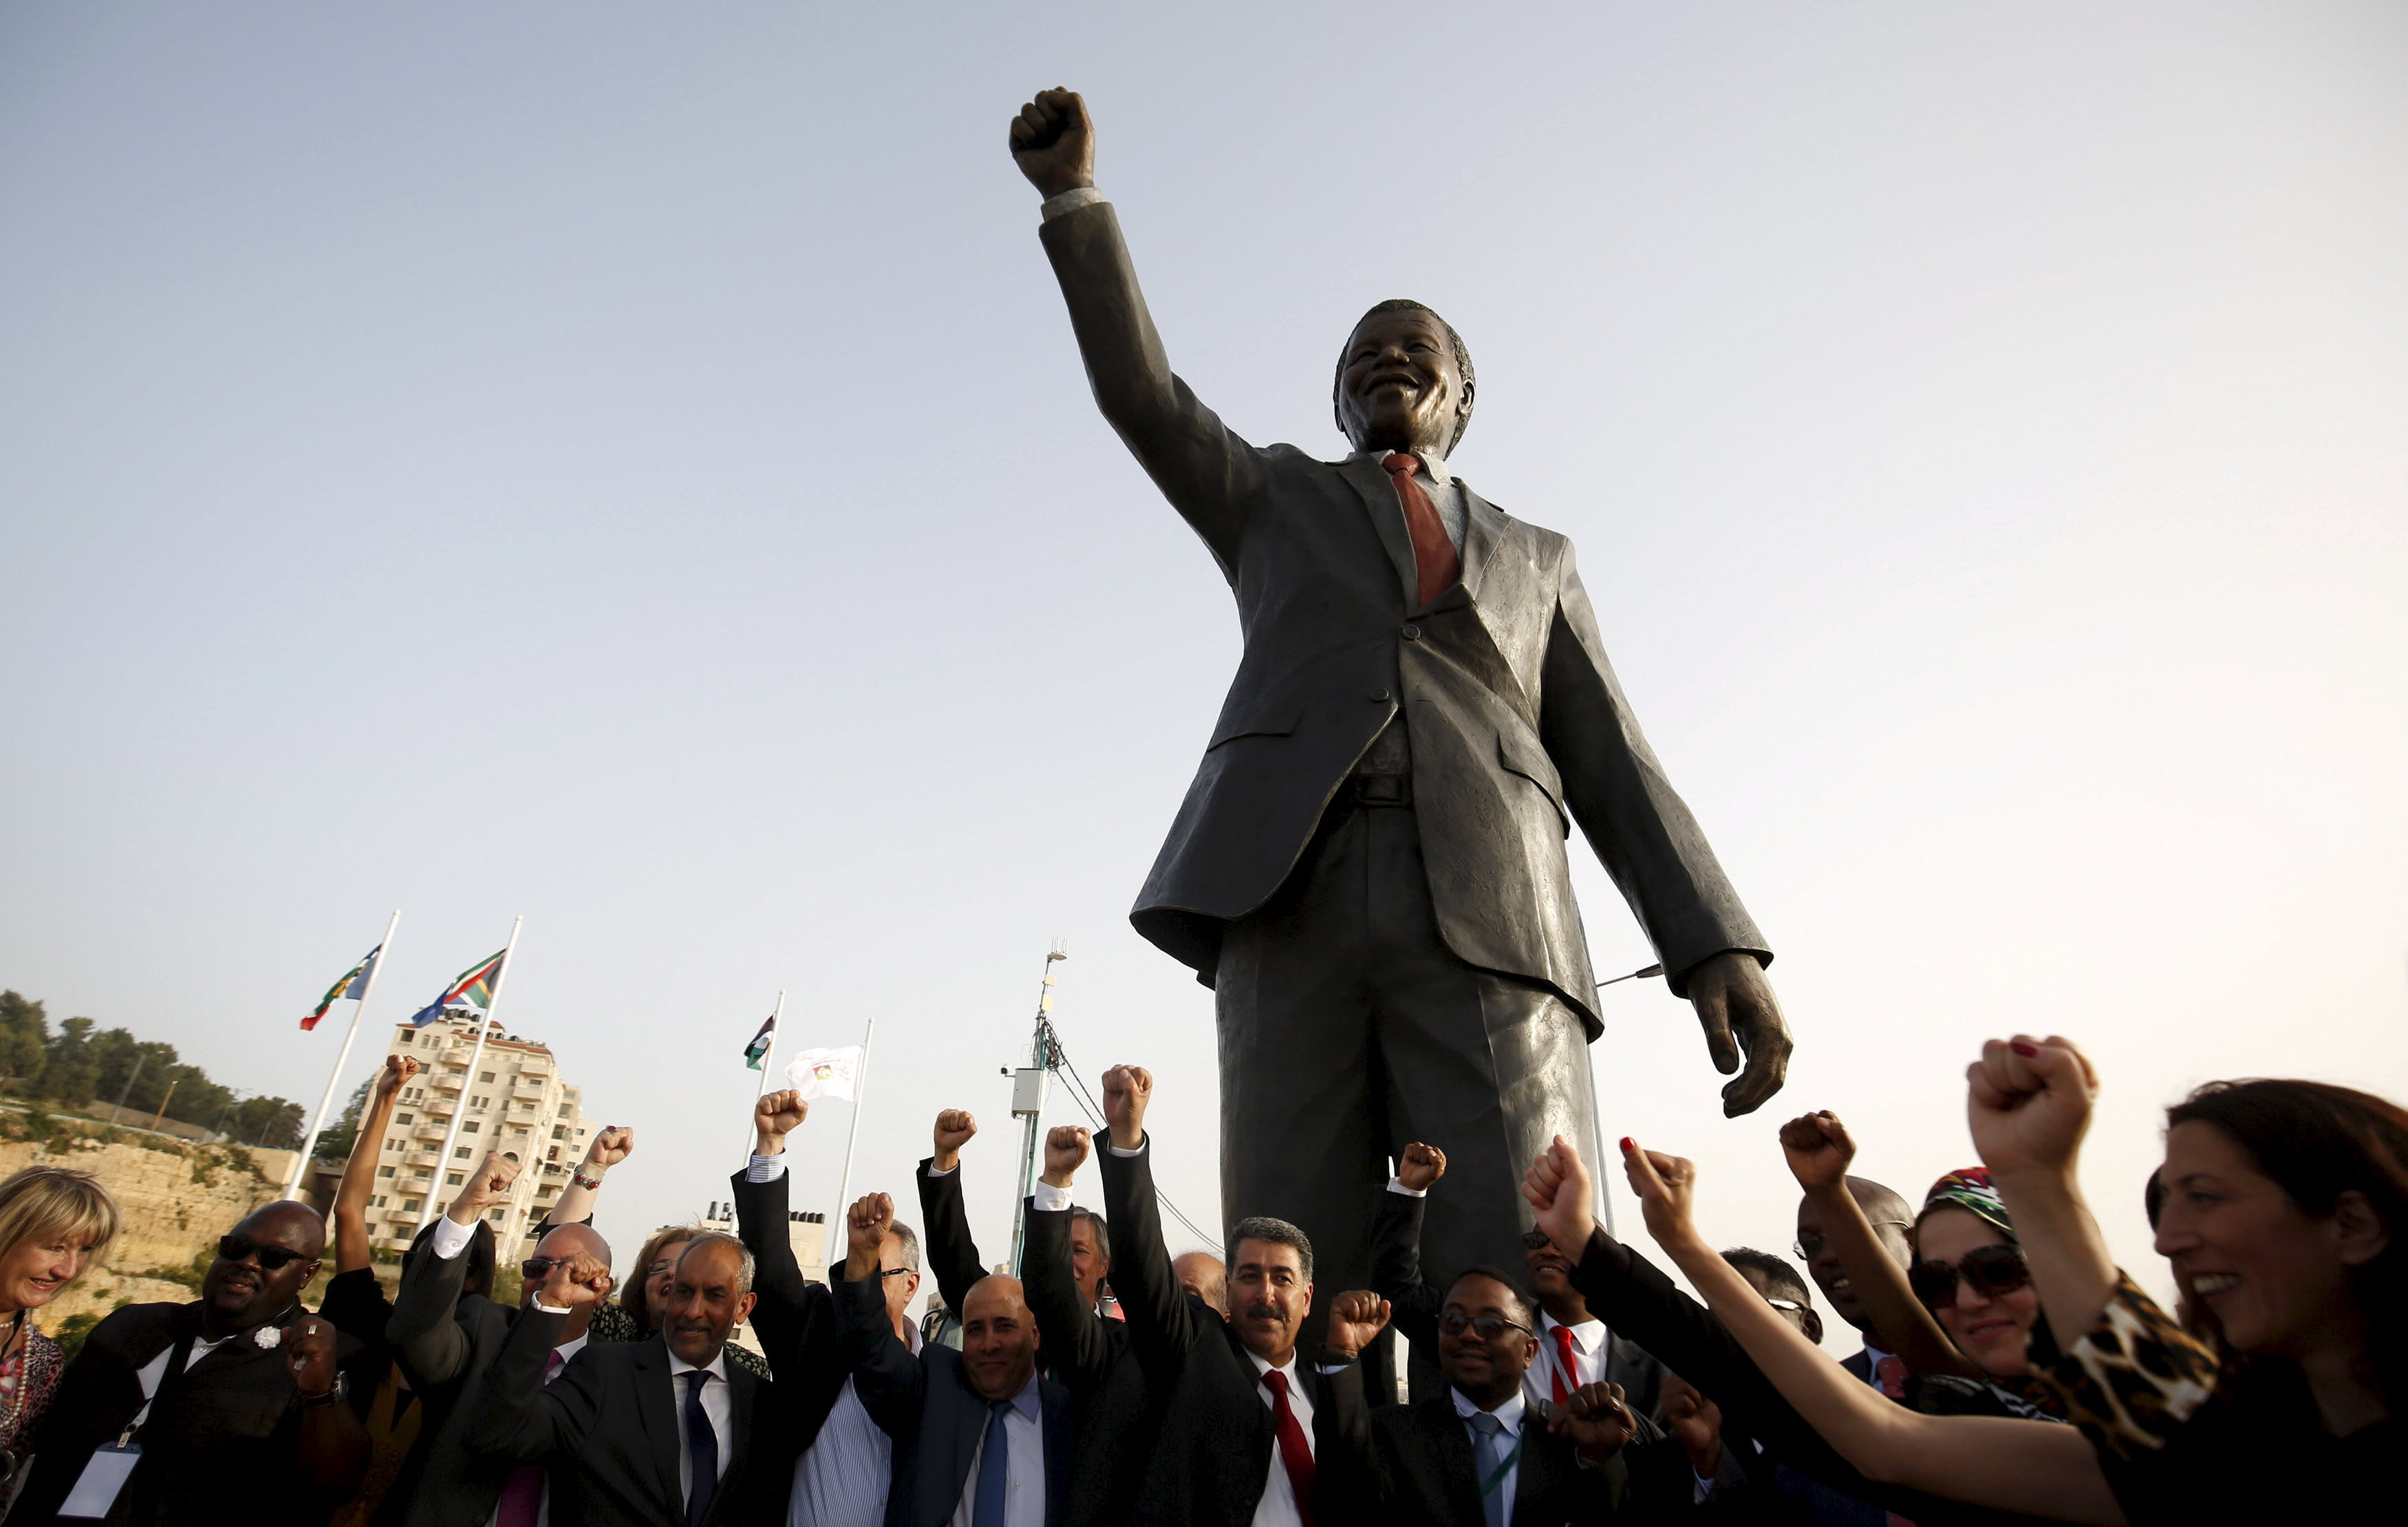 People cheer in front of a Mandela statue during the inauguration of Nelson Mandela Square in the West Bank city of Ramallah. (Mohammad Torokman / Reuters)